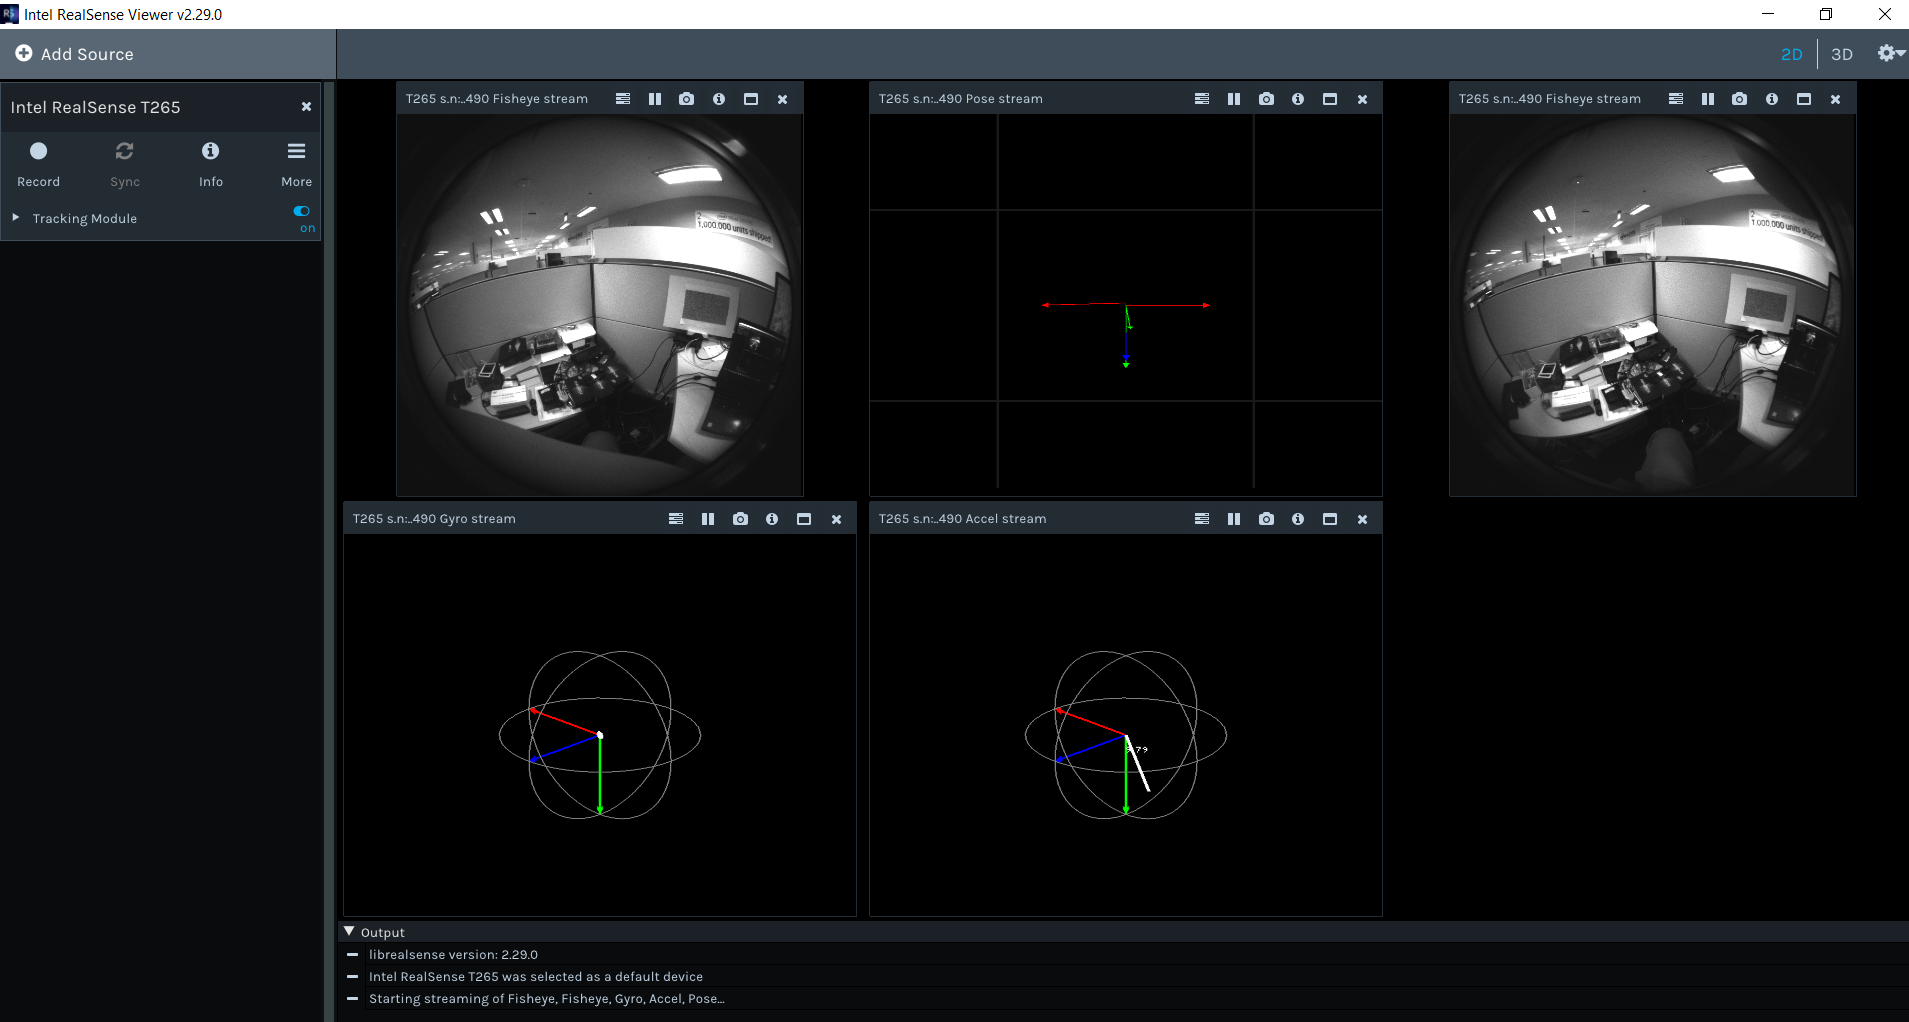 "Fig. 5A. The Intel RealSense Viewer, shown here, is a great starting point for getting familiar with the Intel RealSense Tracking Camera T265. In the ""2D"" view, the different raw sensor inputs are visualized."